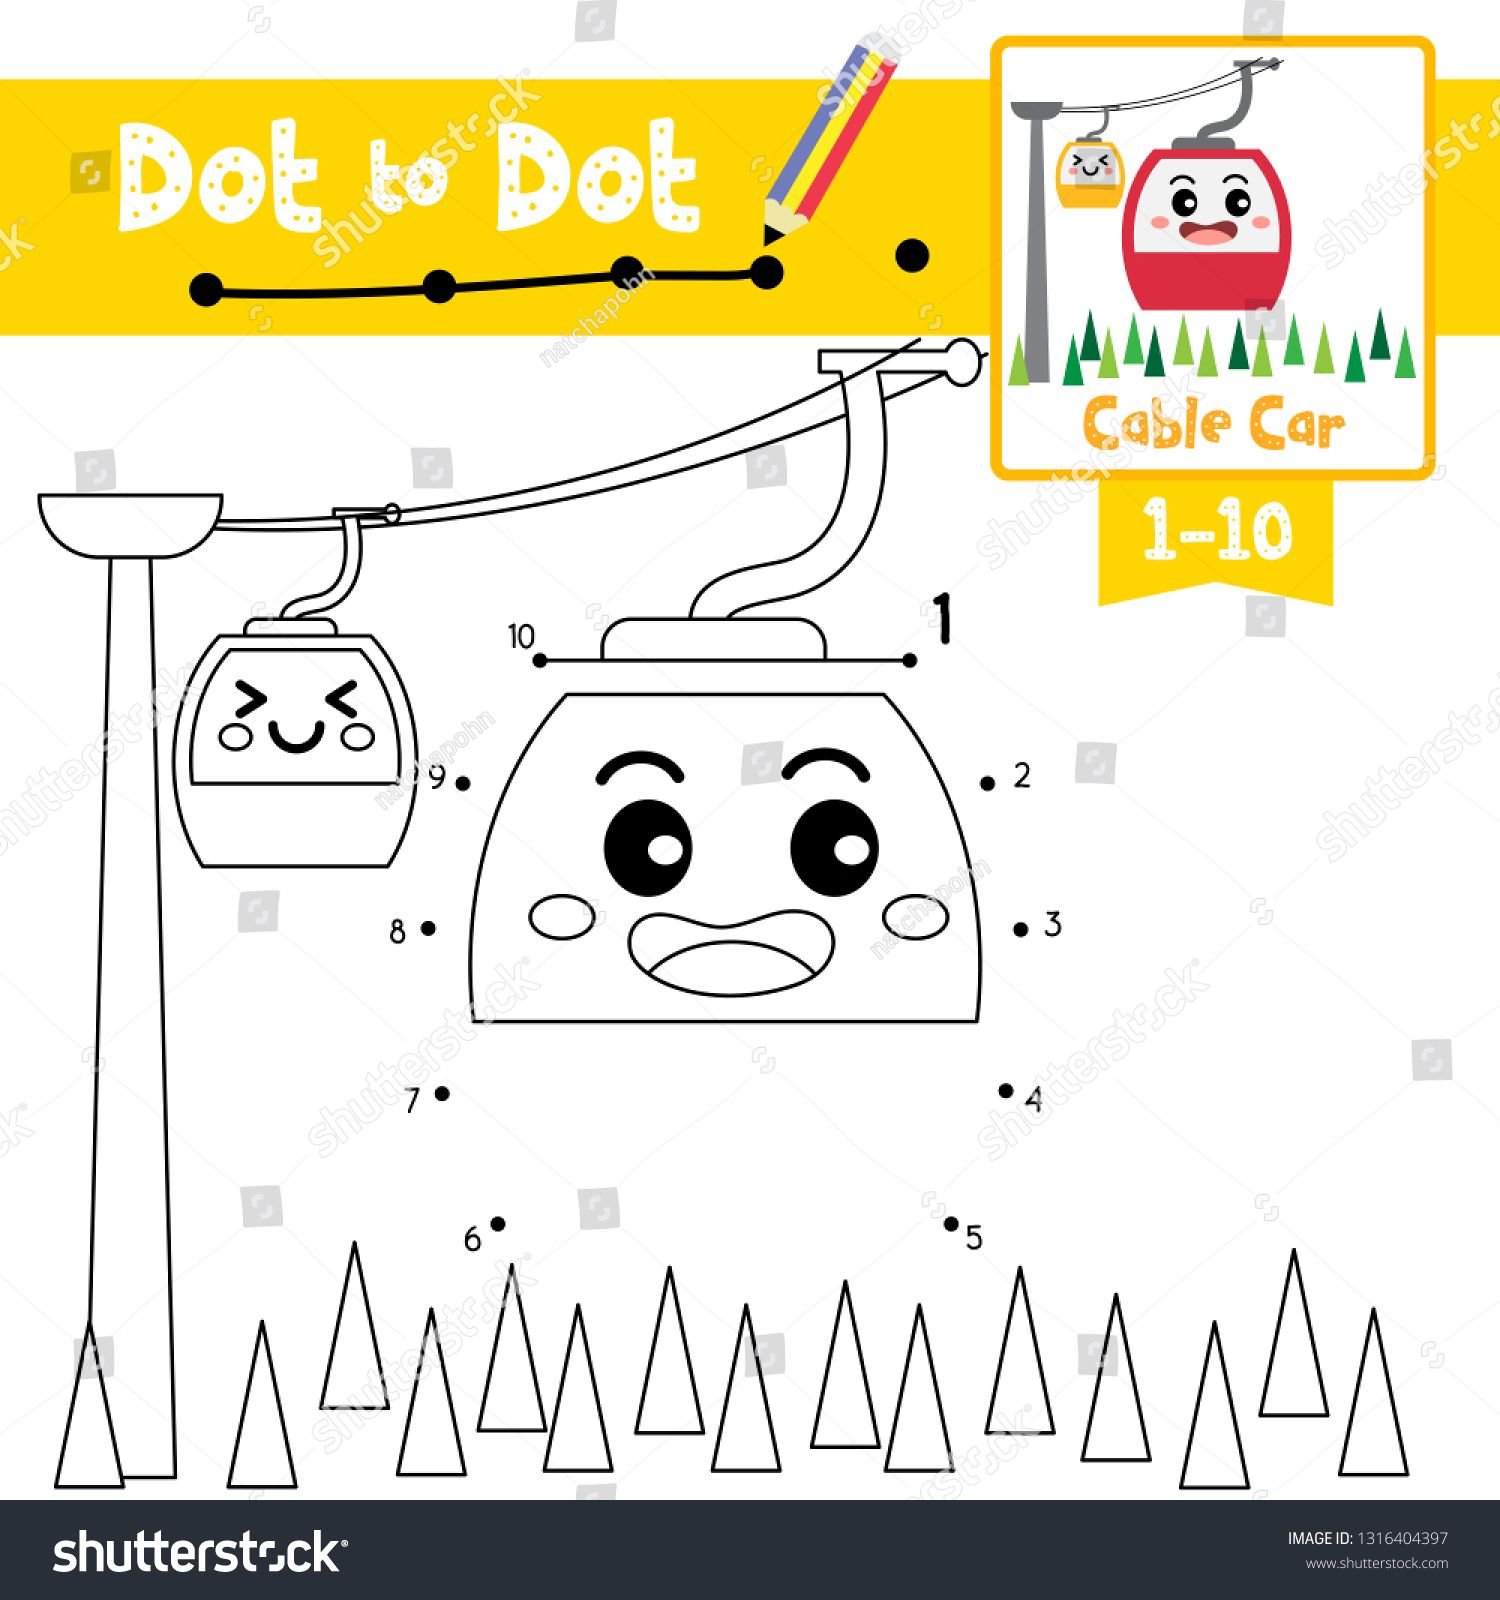 Dot To Dot Educational Game And Coloring Book Of Cable Car